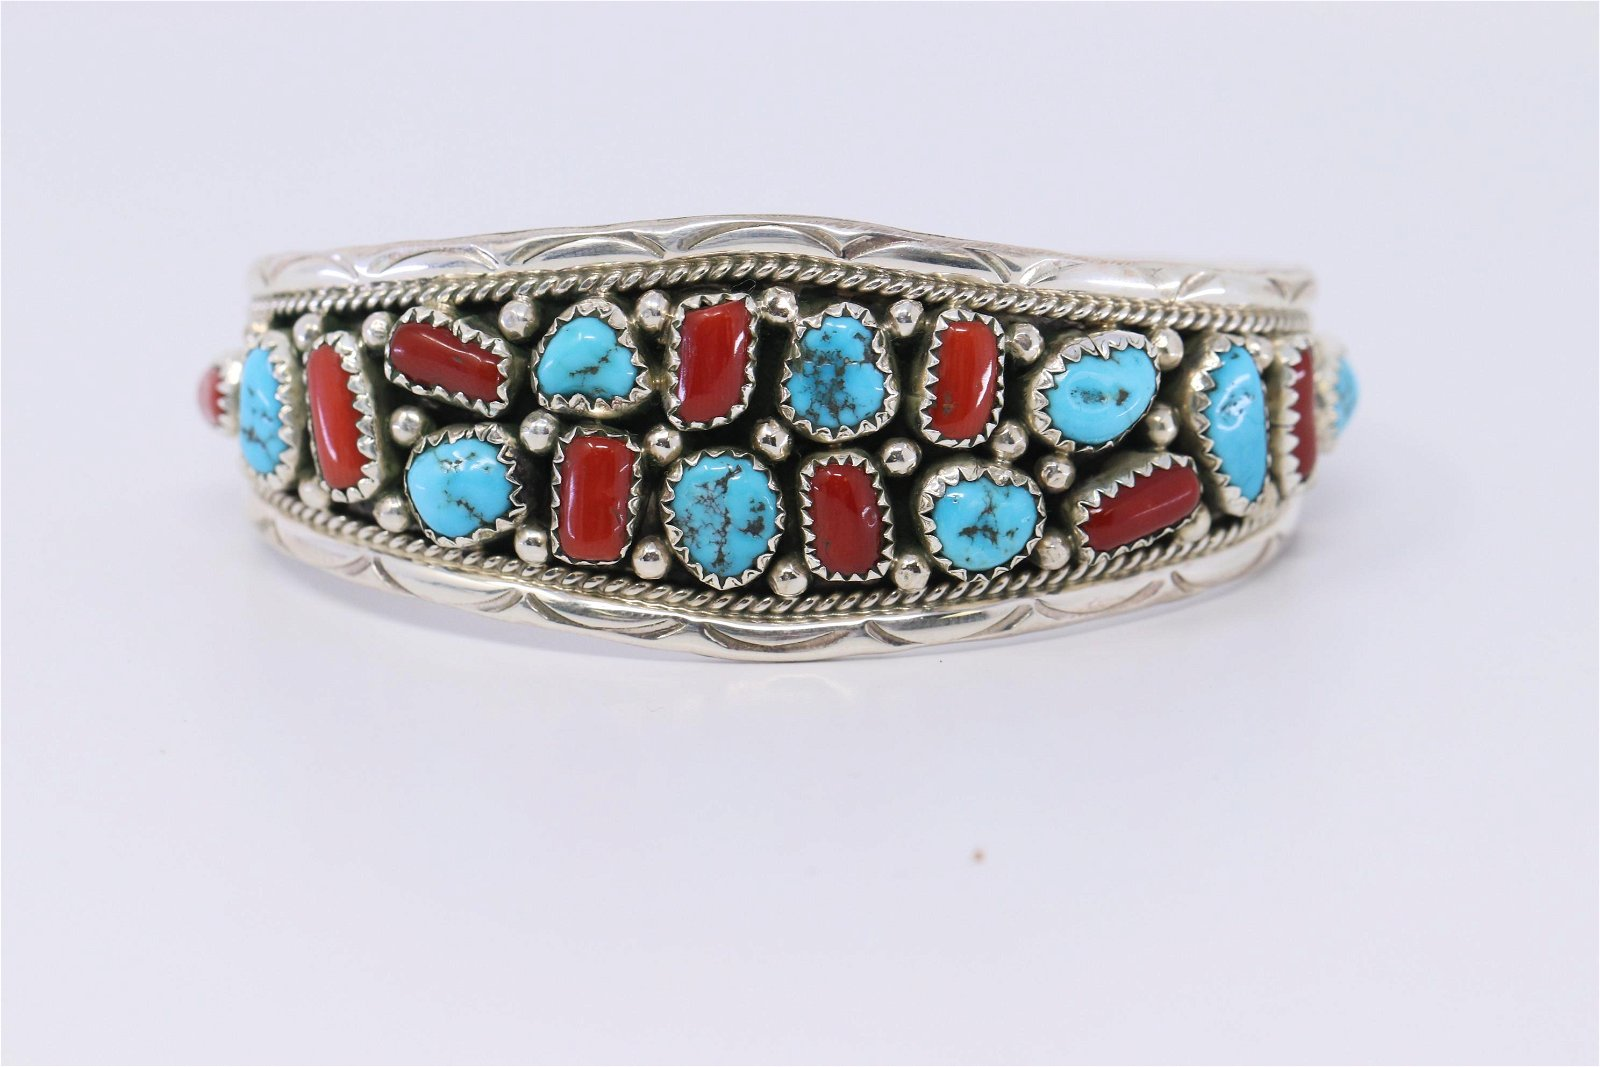 Navajo Handmade Sterling Silver Turquoise & Coral